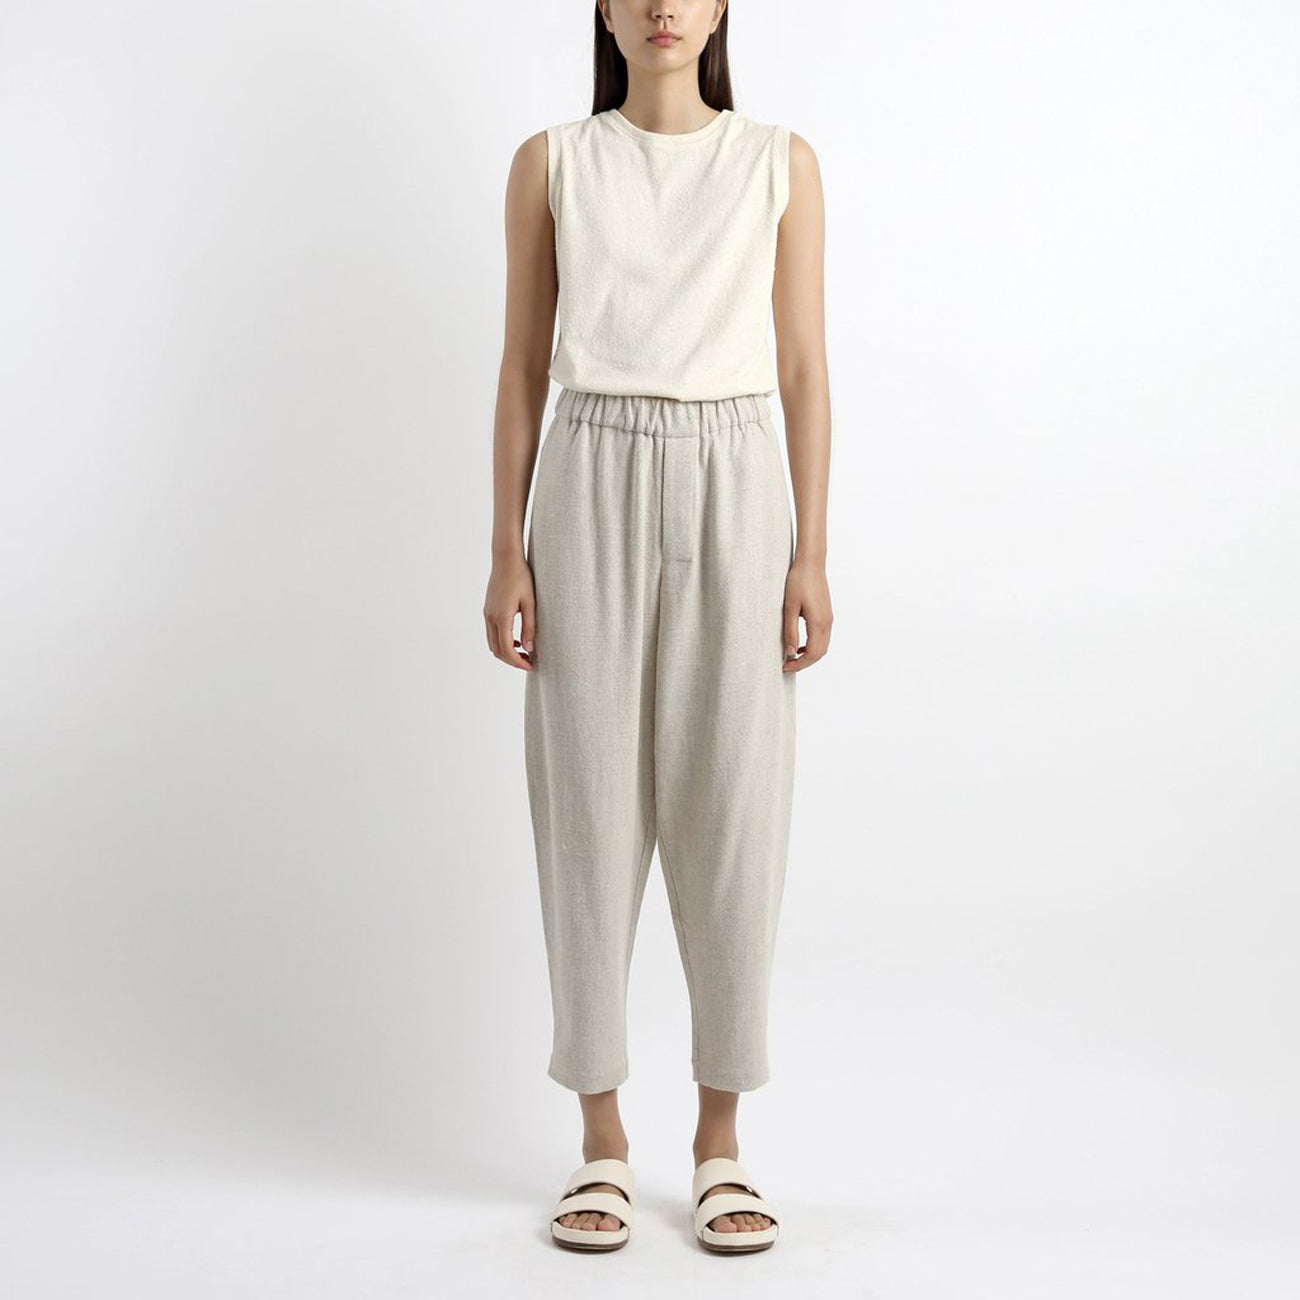 elastic pull- up trouser in oatmeal